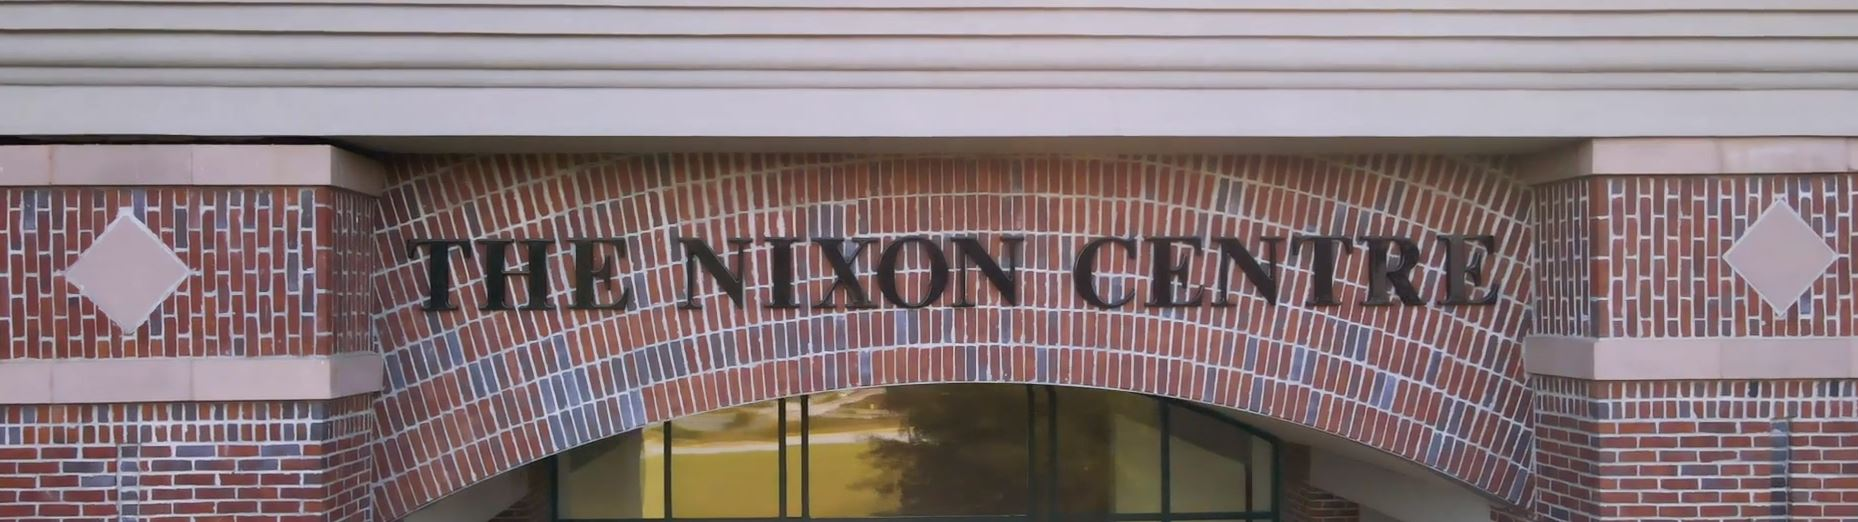 The entrance to the Nixon Centre's renovated facility in Newnan, GA. Image courtesy of the Coweta County School System.